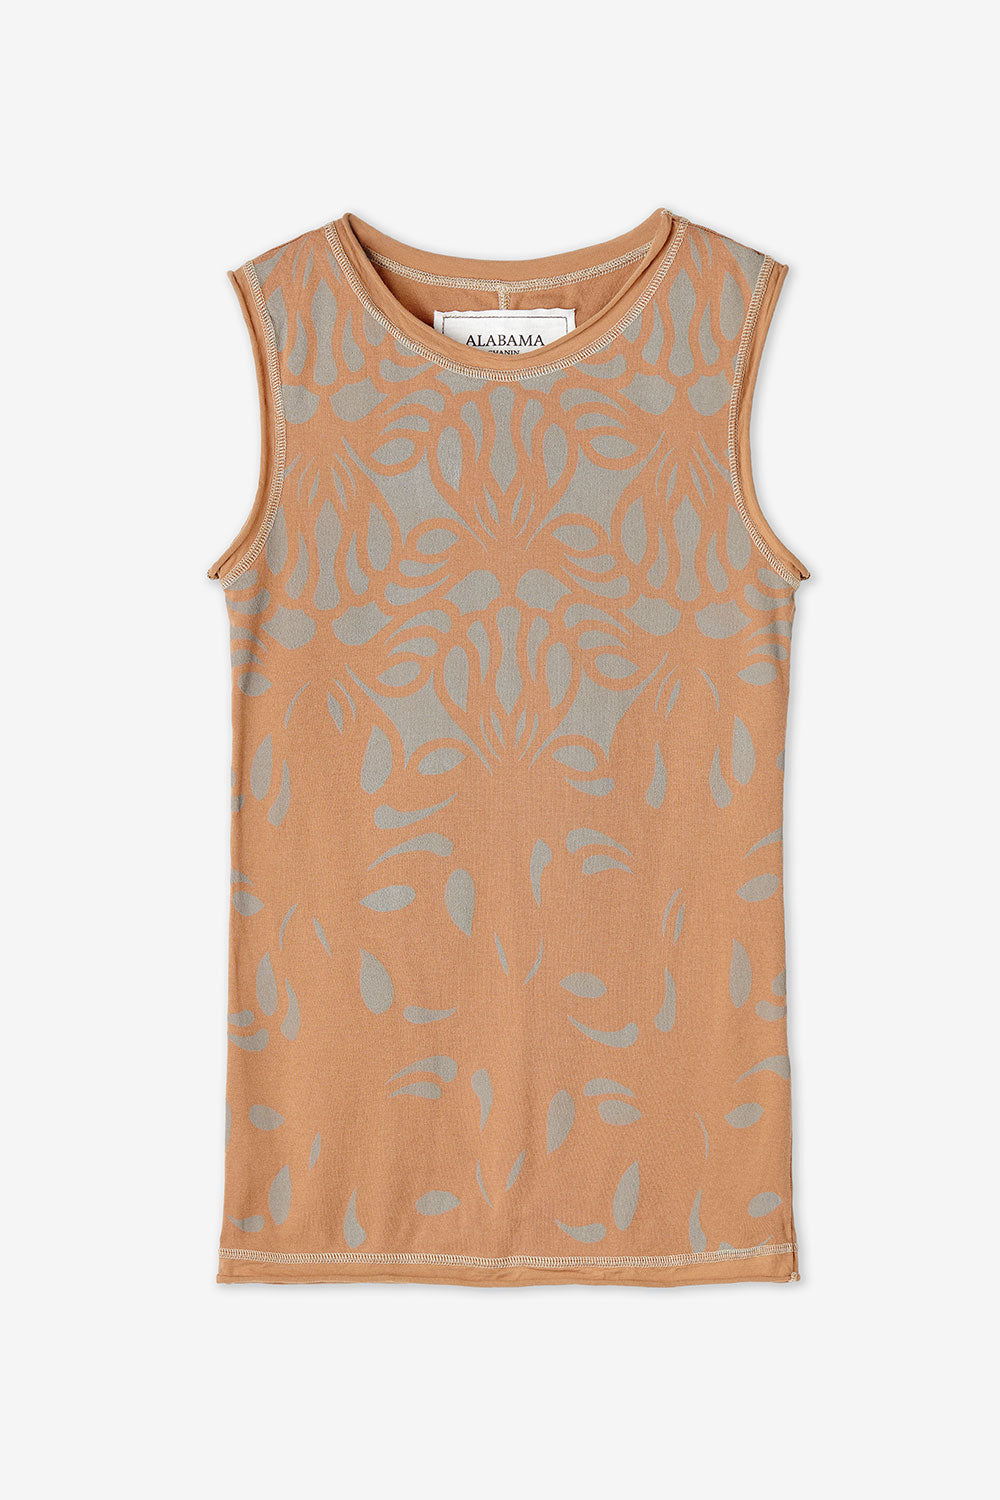 Alabama Chanin Ramona Top Light Brown Top with Hand Painted Lace Pattern